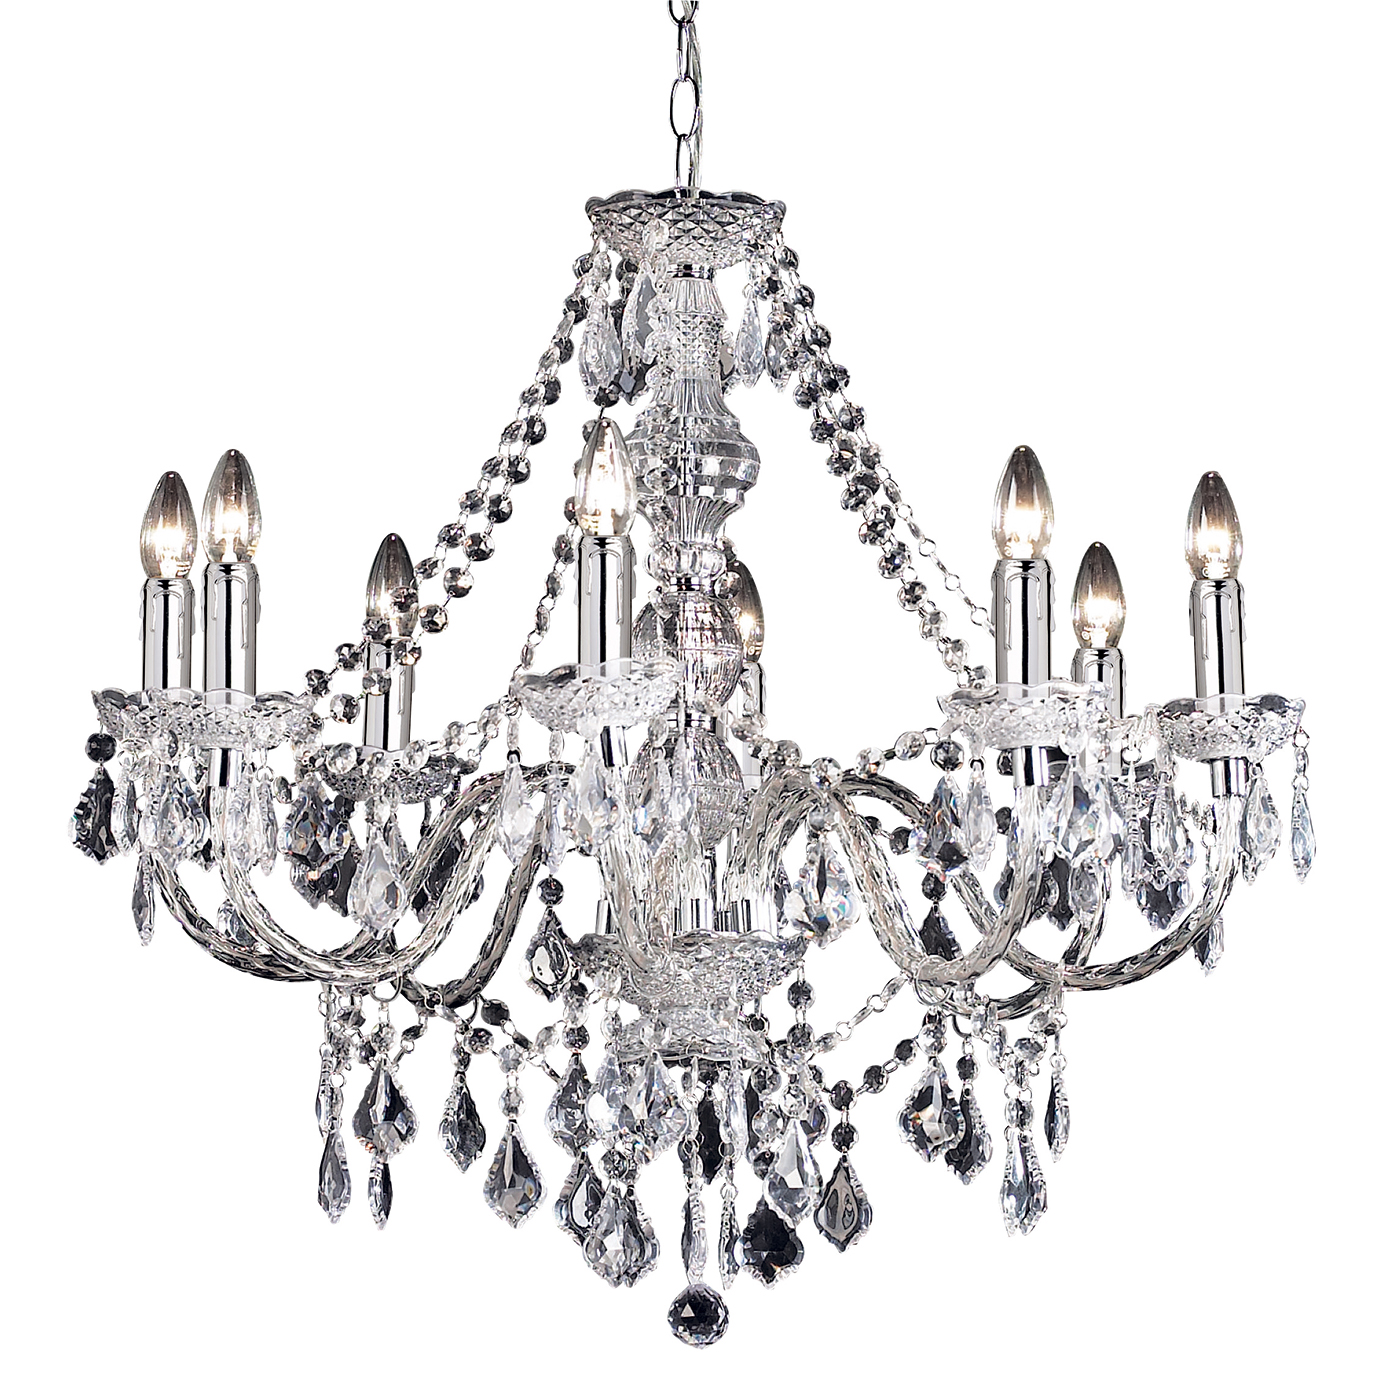 Endon Clarence chandelier 8x 60W Clear acrylic & chrome effect plate Thumbnail 1